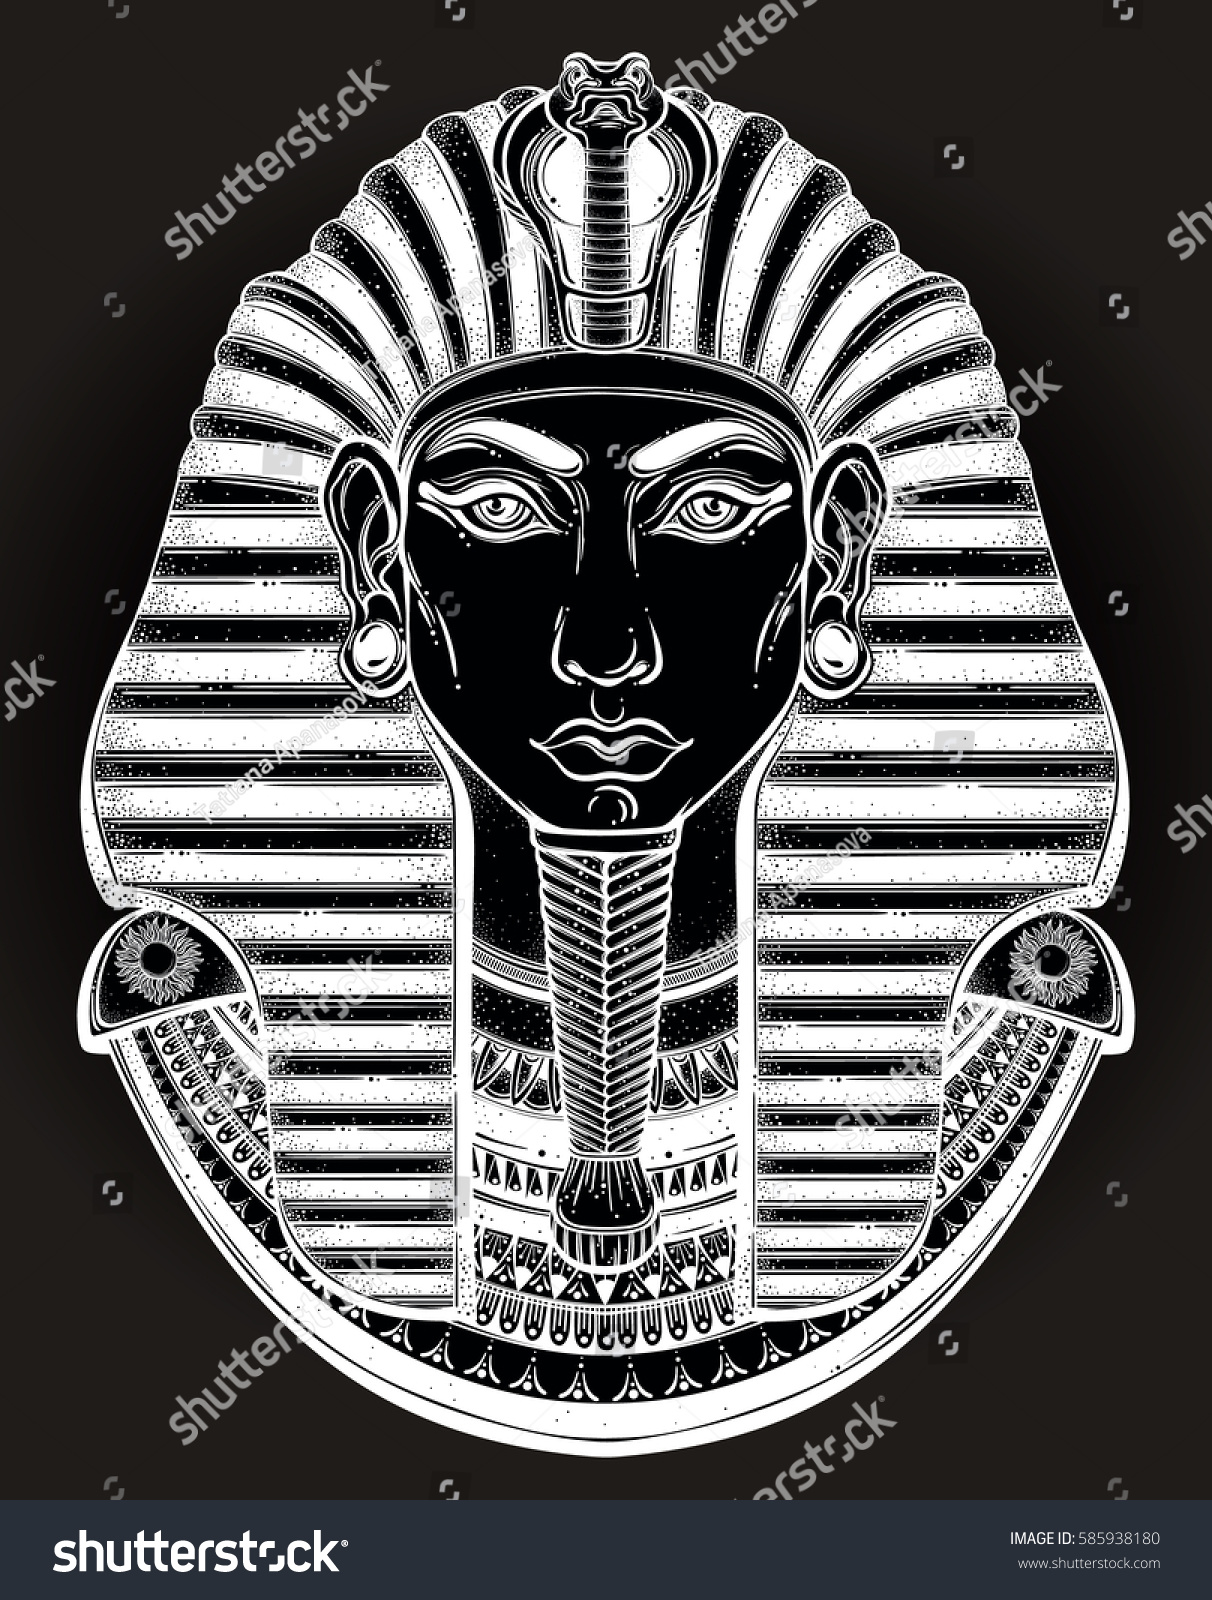 de8d04c4e Hand-drawn vintage illustration of the ancient Egyptian Pharaoh's head. Tattoo  art, graphic.